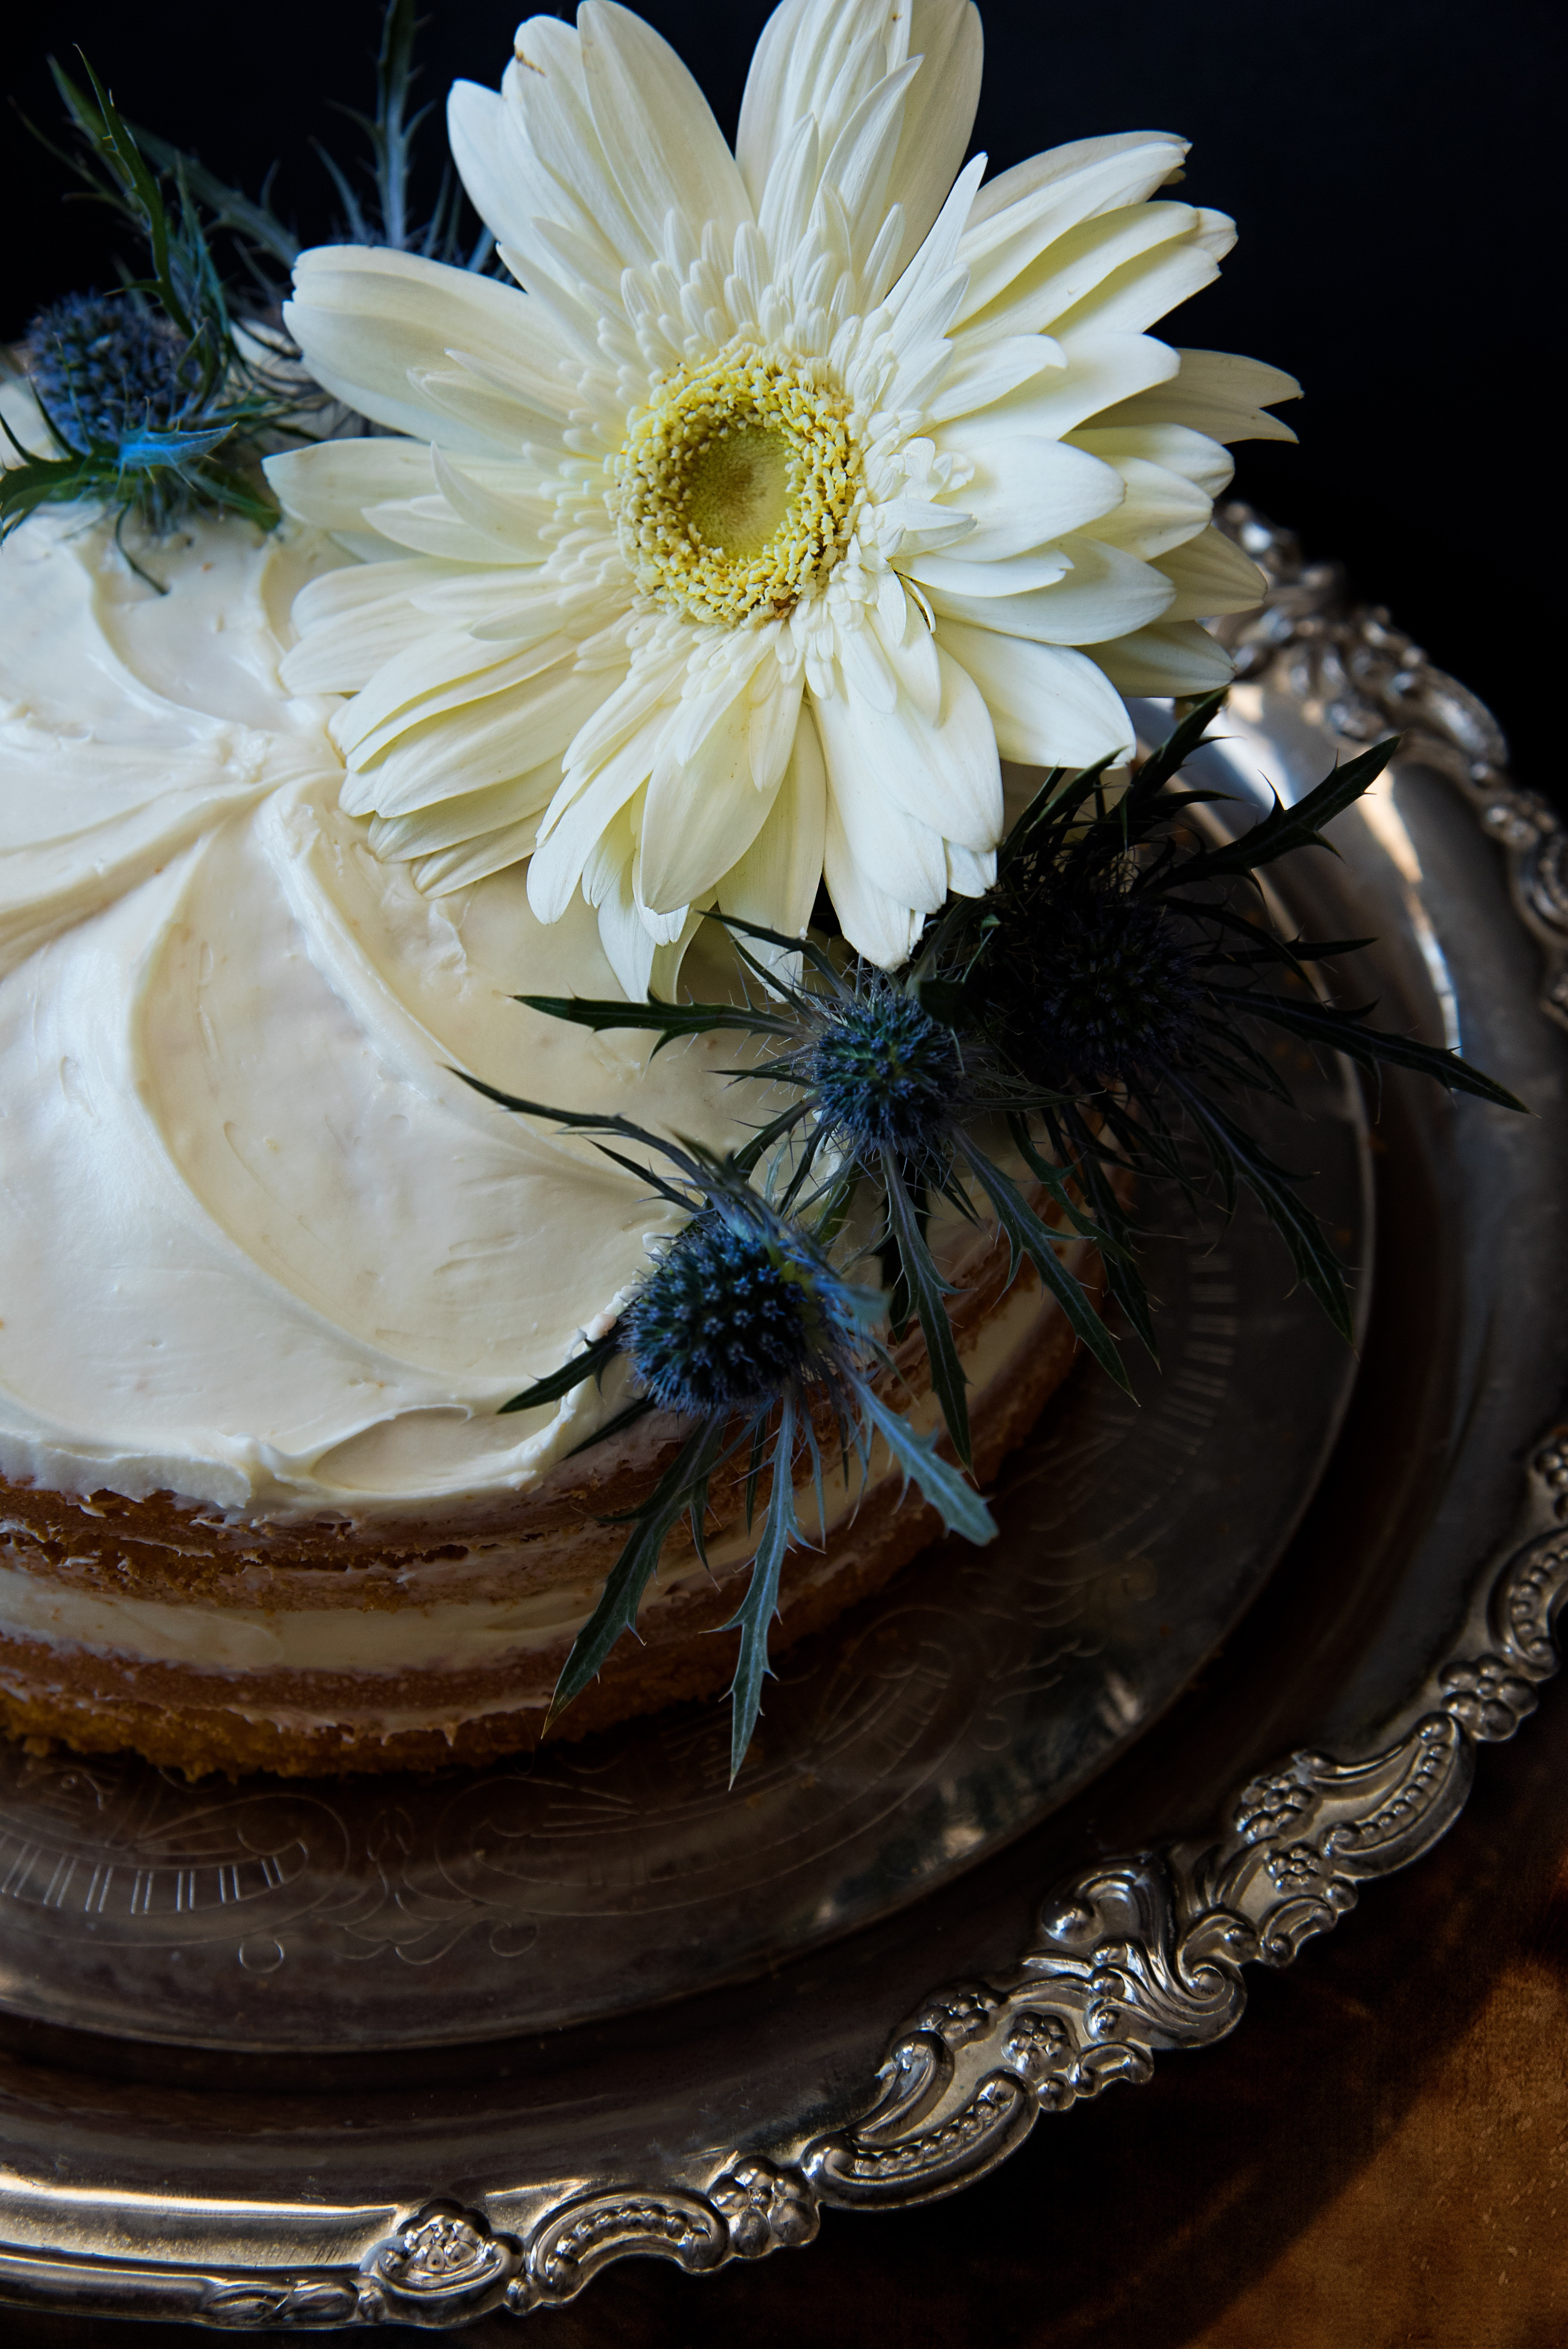 White Flowers on Round Cake With White Cream, Art, Treats, Tray, Sweets, HQ Photo